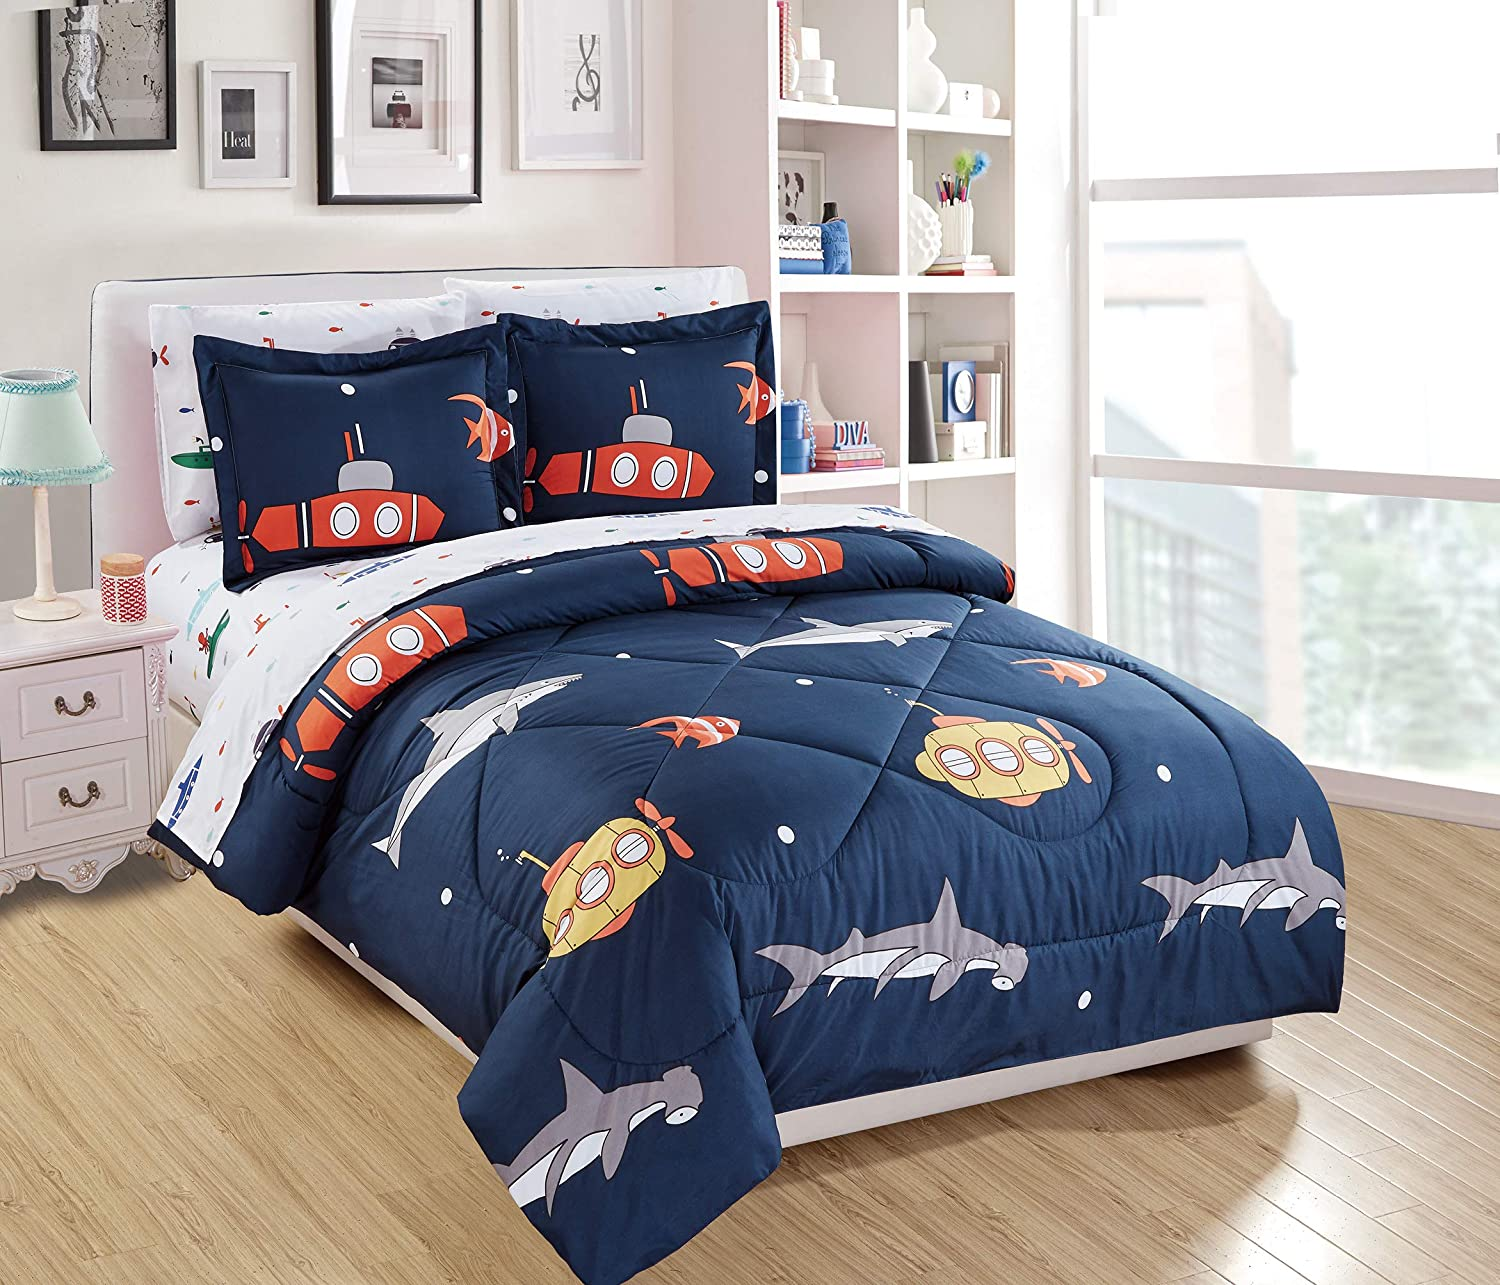 Fancy Linen 5pc Twin Comforter Set Sharks Fishes Submarine Navy Blue Grey Yellow Orange White New